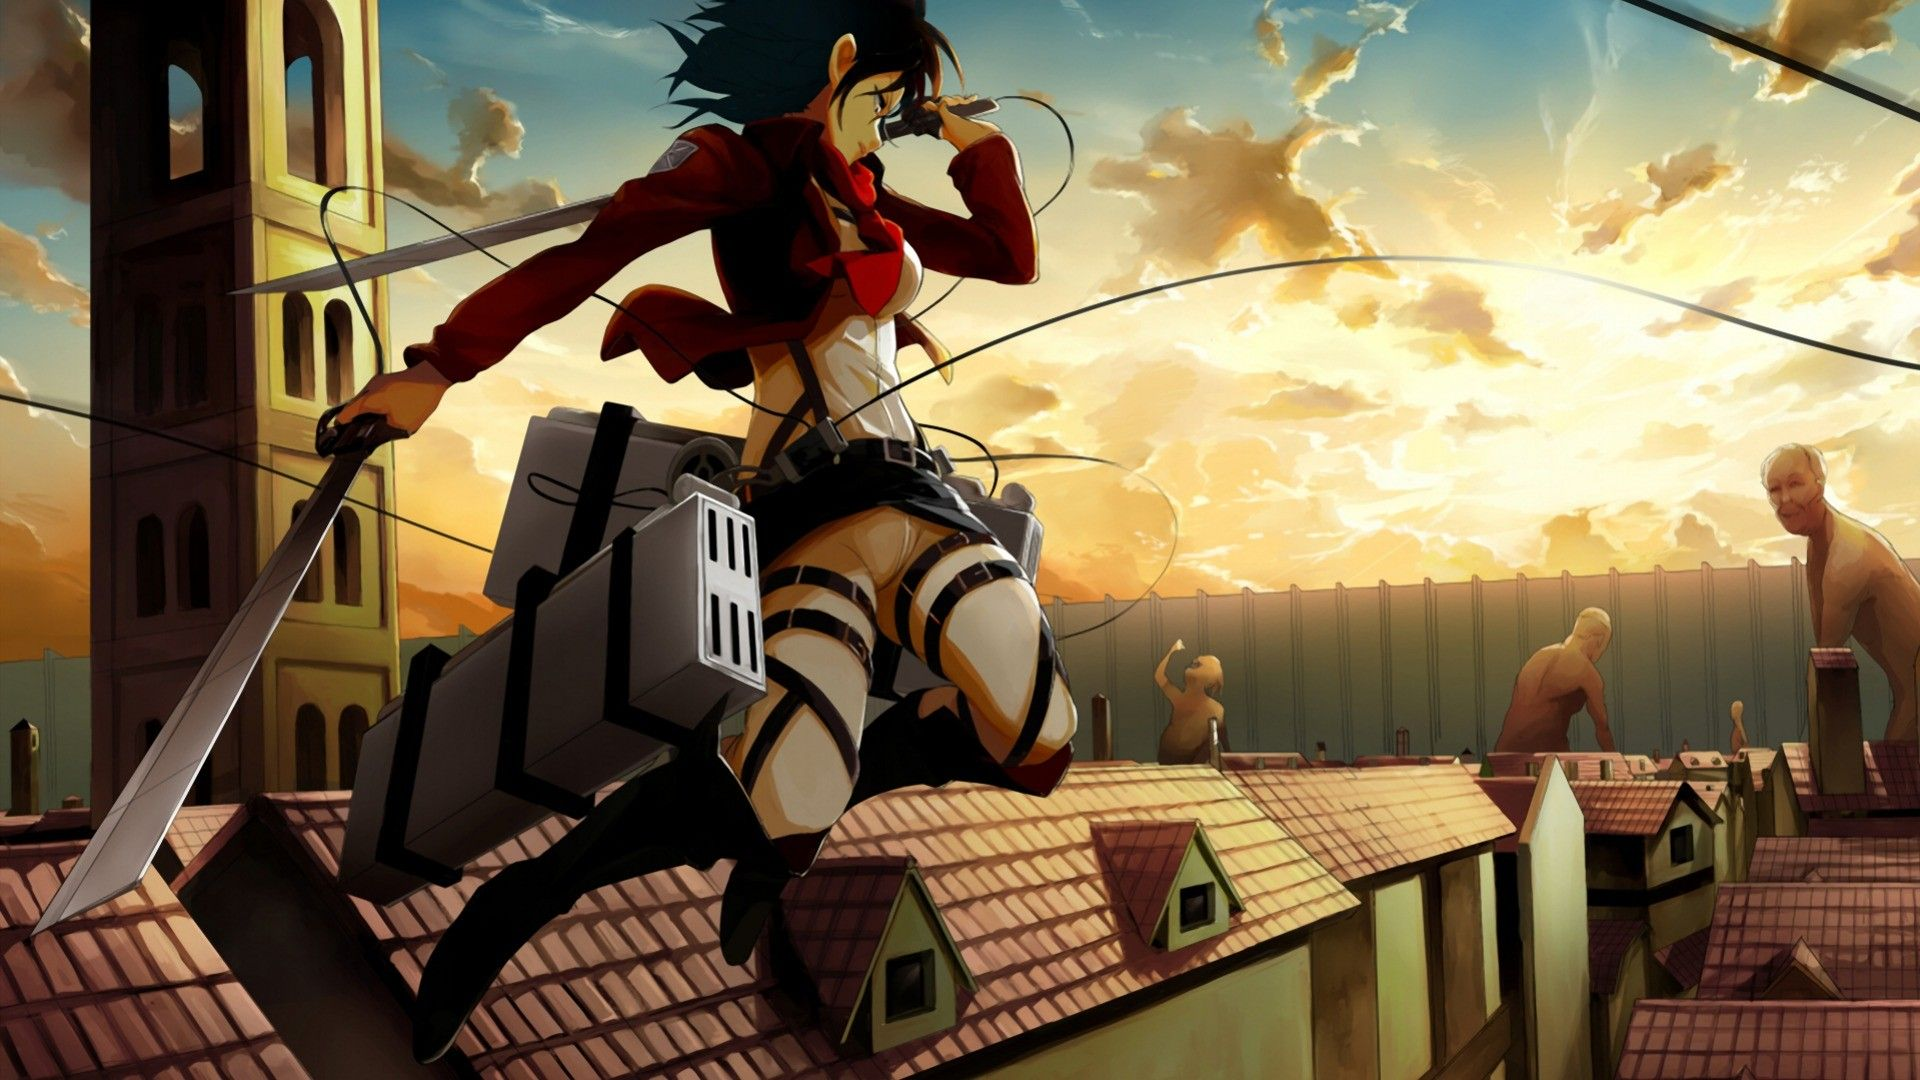 Download Hd Wallpapers Of 67049 Shingeki No Kyojin Mikasa Ackerman Free Download High Quality And Widescreen Res Attack On Titan Anime Attack On Titan Titans